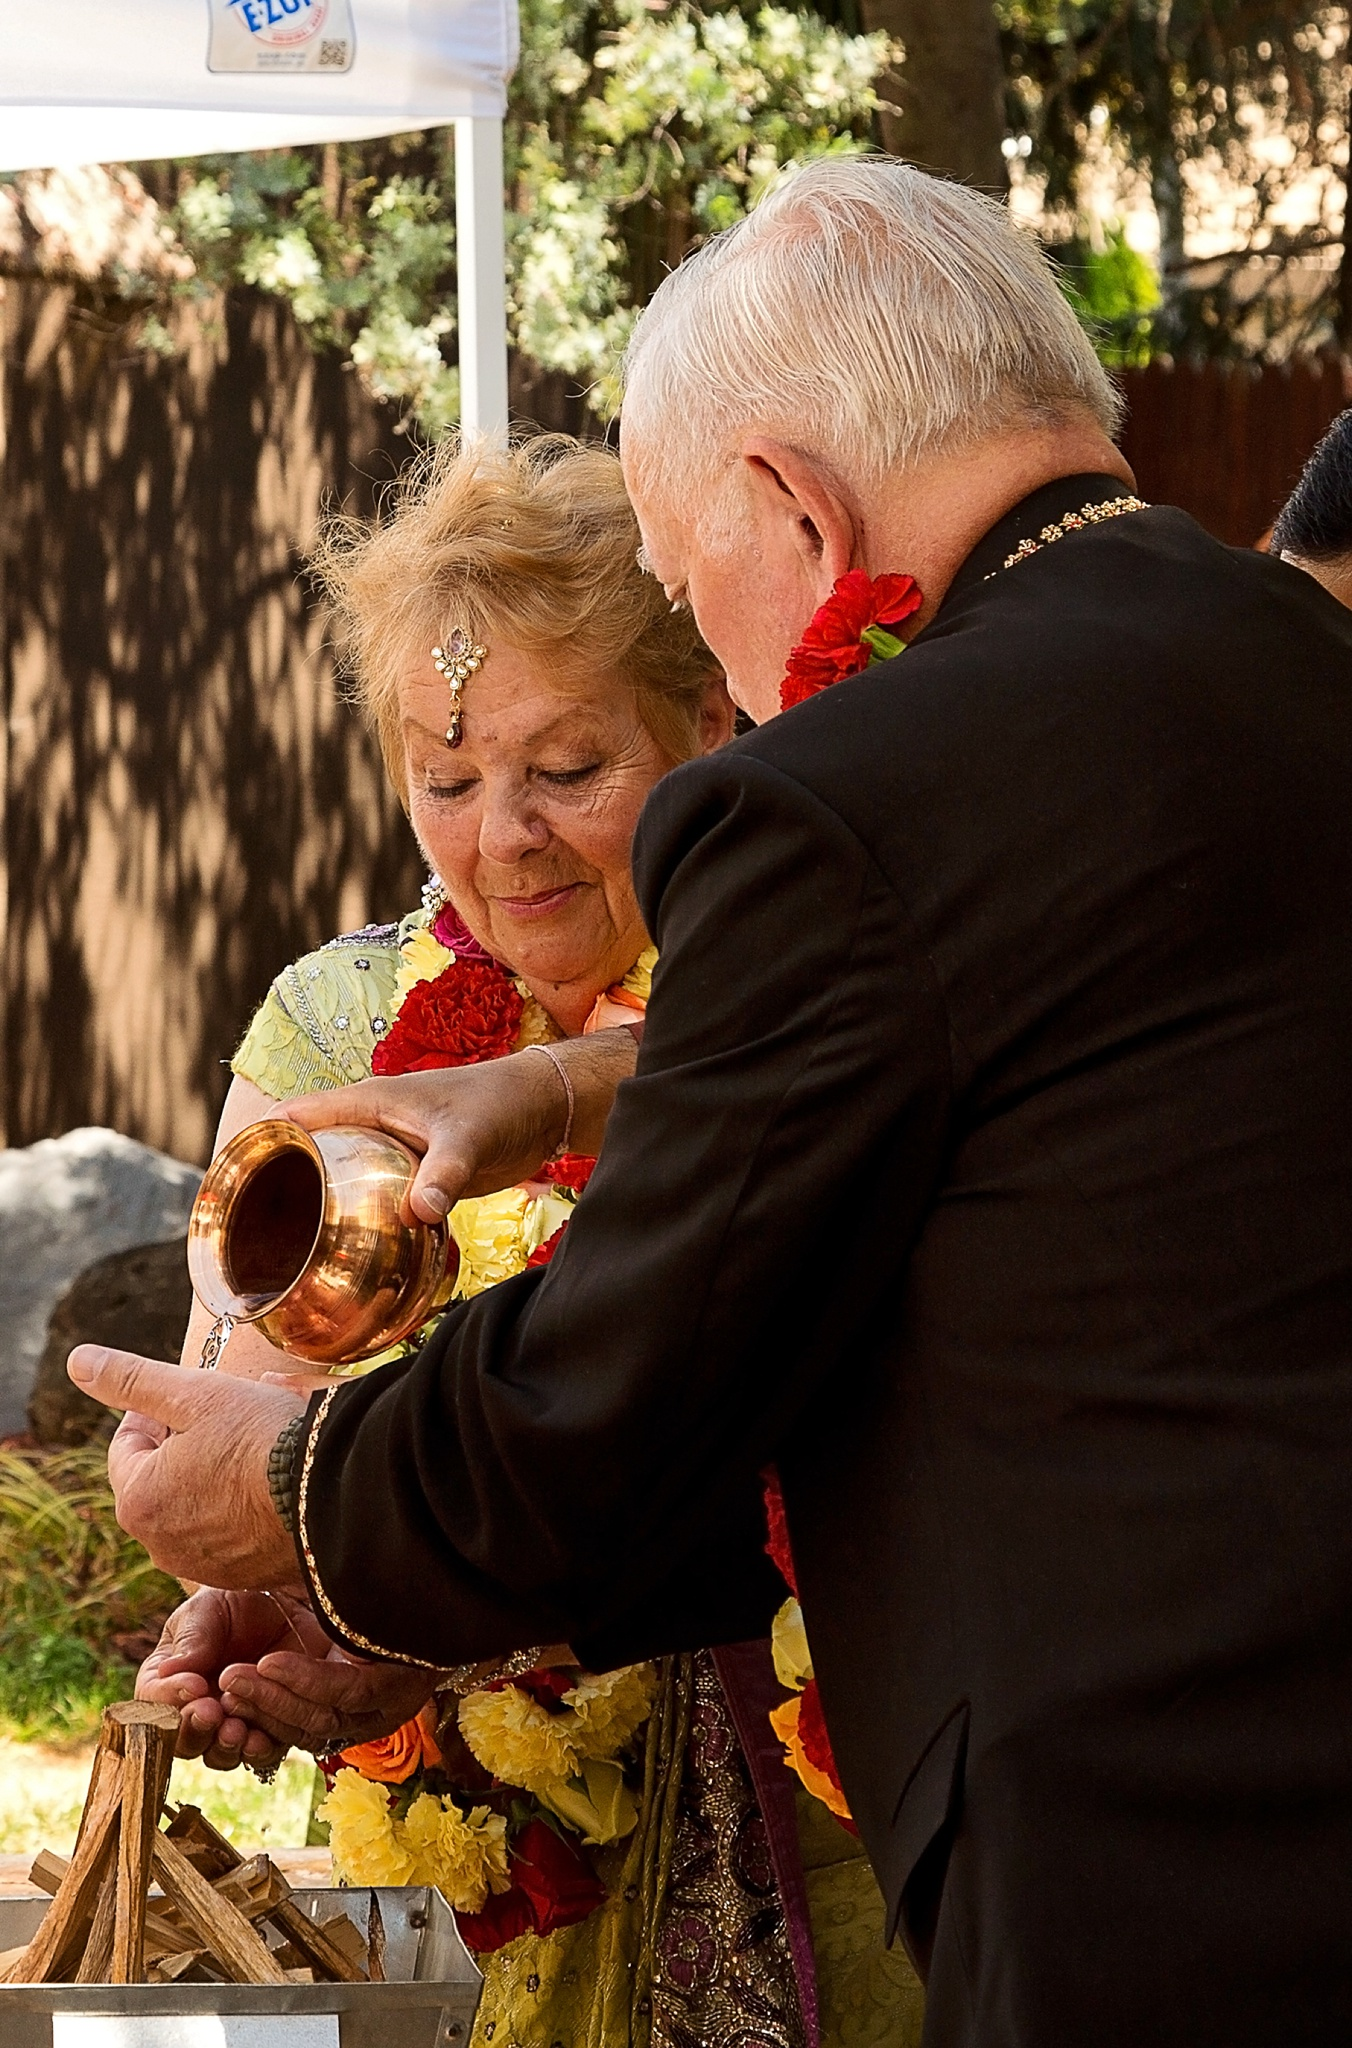 wedding_don_marilyn_hindu_christian_sacramento_wedding_photographer_danielle_alysse_photography_2905_WEB.jpg